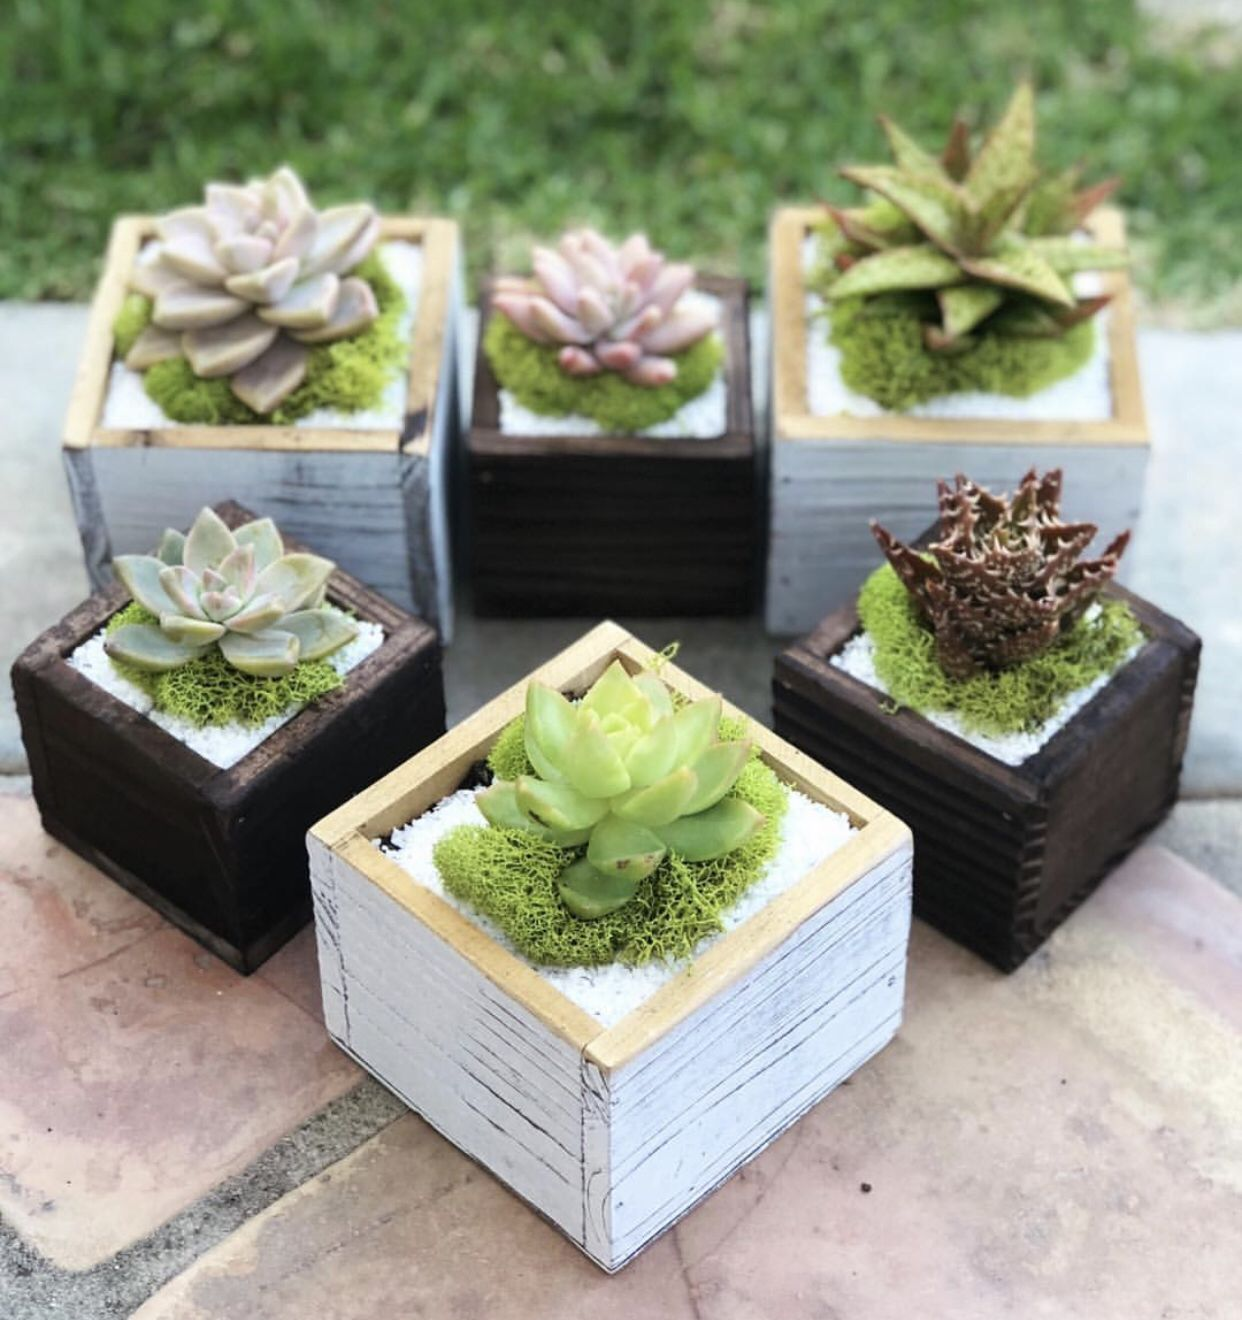 Rustic Wooden Box Planters Planter Boxes Succulent Planters Box Rustic Wooden Box